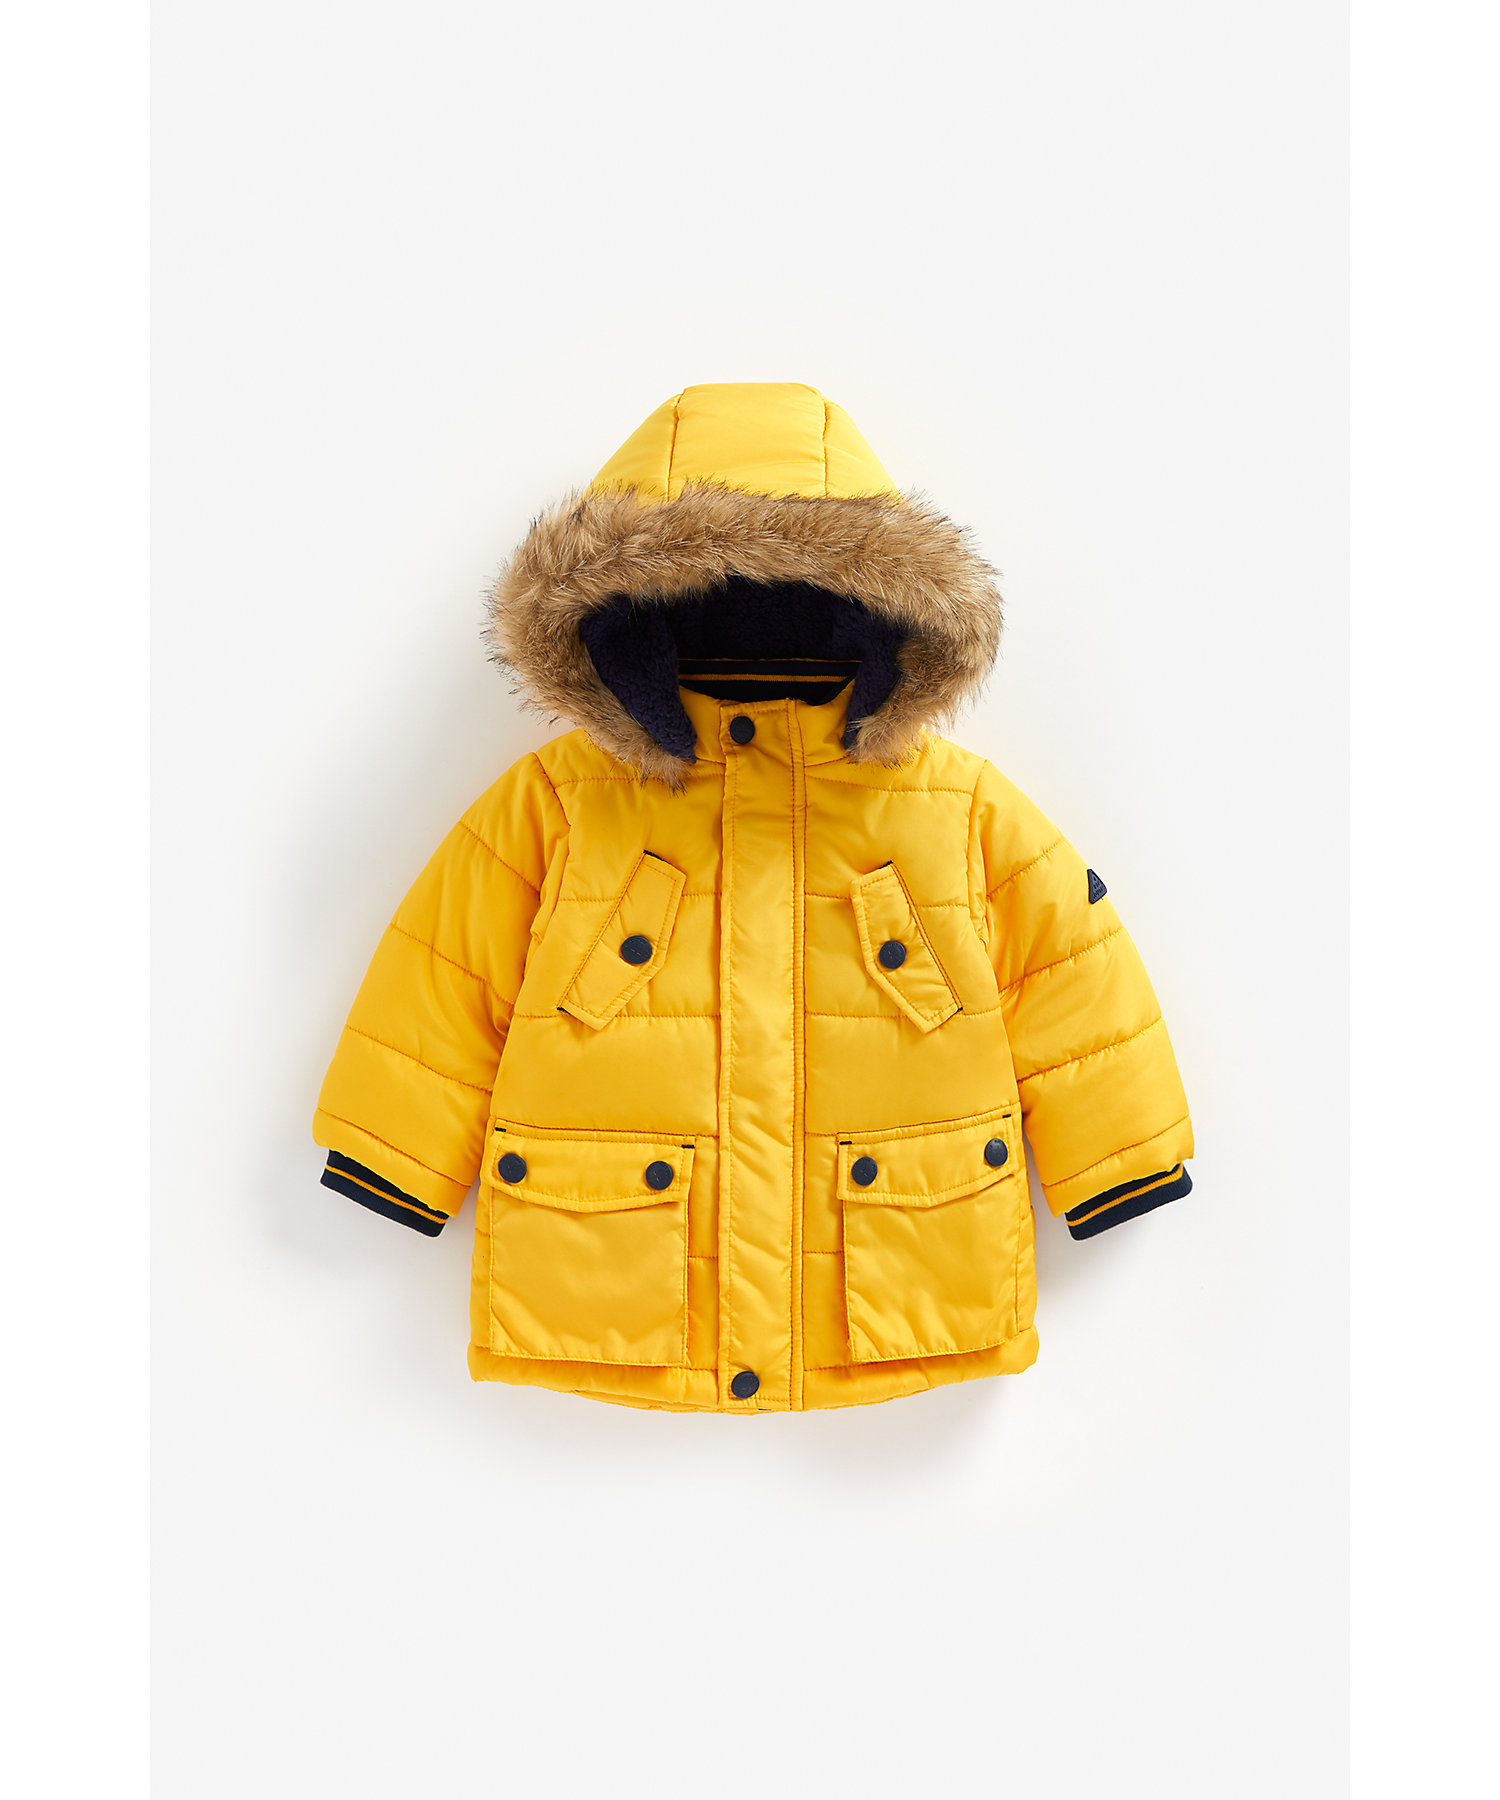 Mothercare | Boys Full Sleeves Padded Jacket Hooded - Yellow